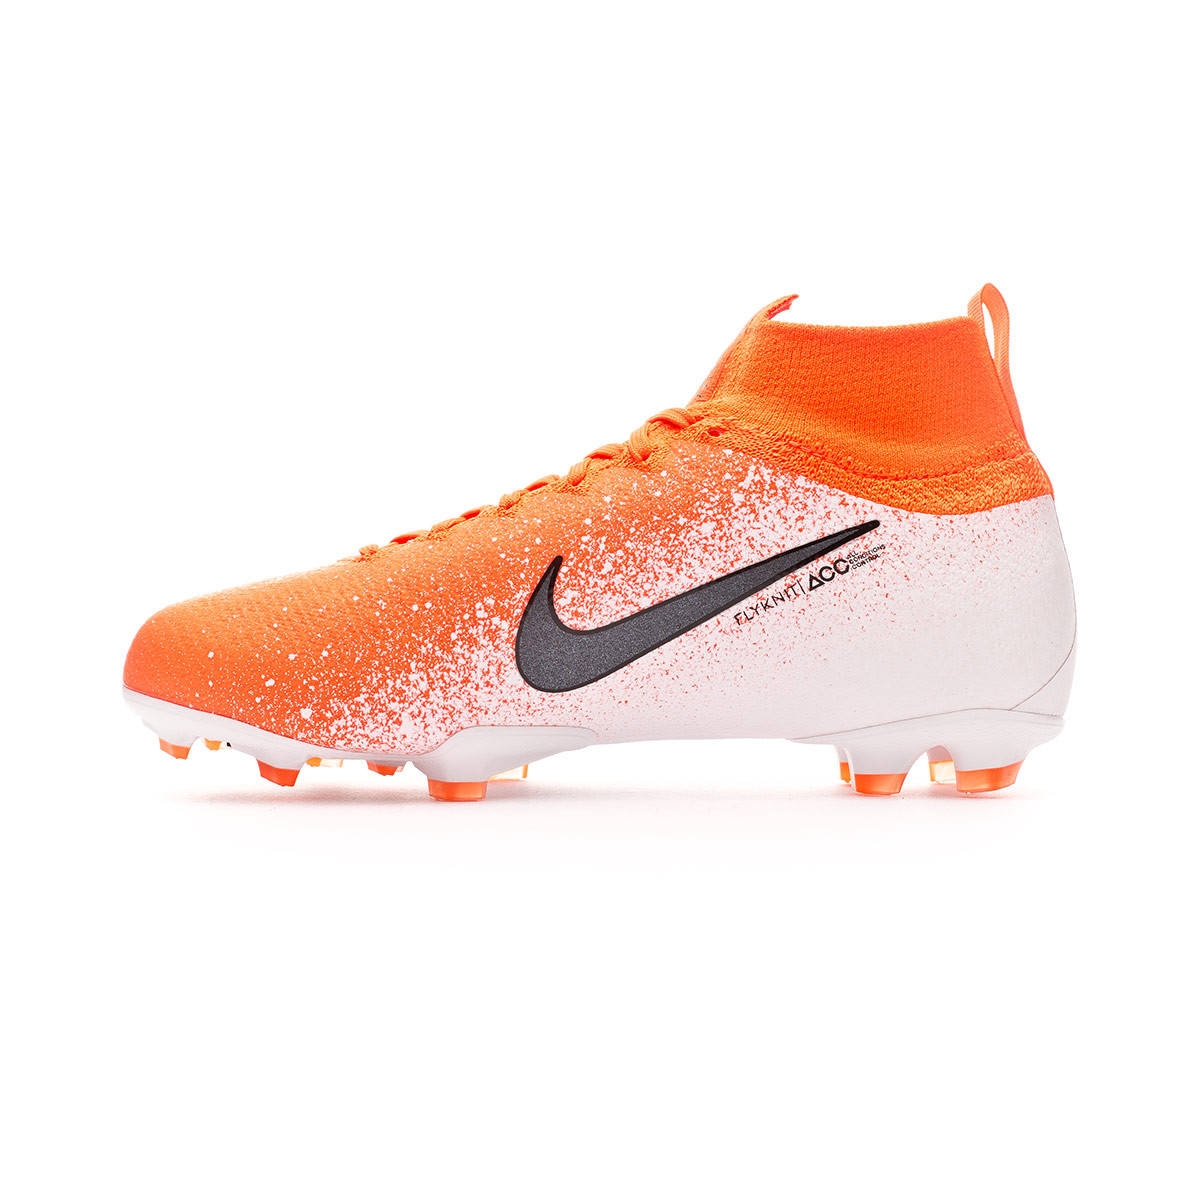 2c886bcdea Football Boots Nike Kids Mercurial Superfly VI Elite FG Hyper crimson-Black- White - Football store Fútbol Emotion